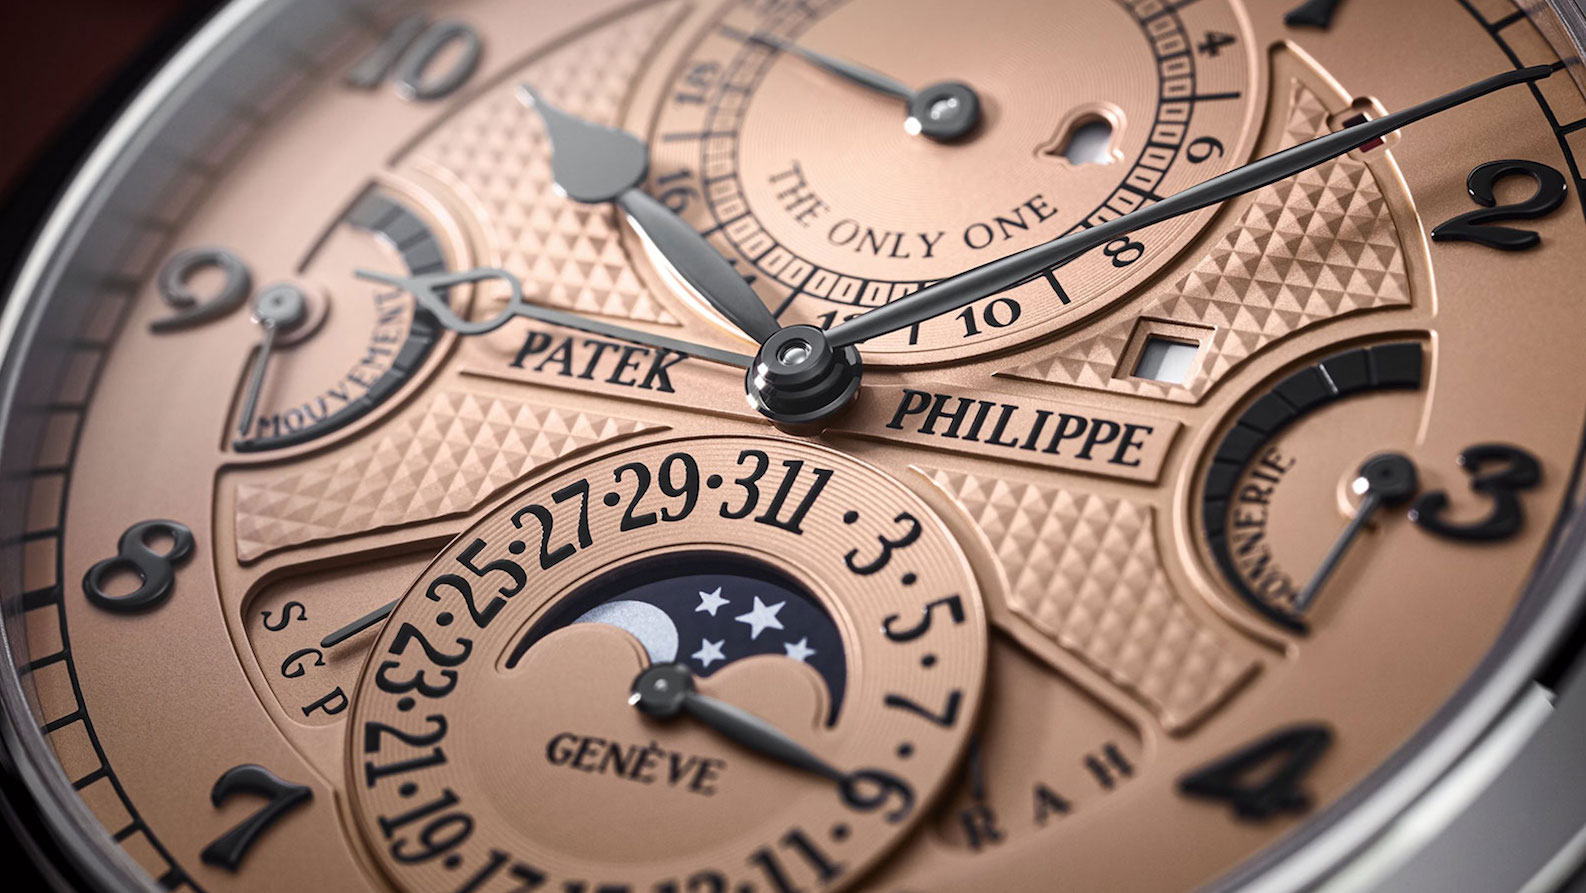 This Rs 223 cr Patek Philippe is the most expensive watch in the world